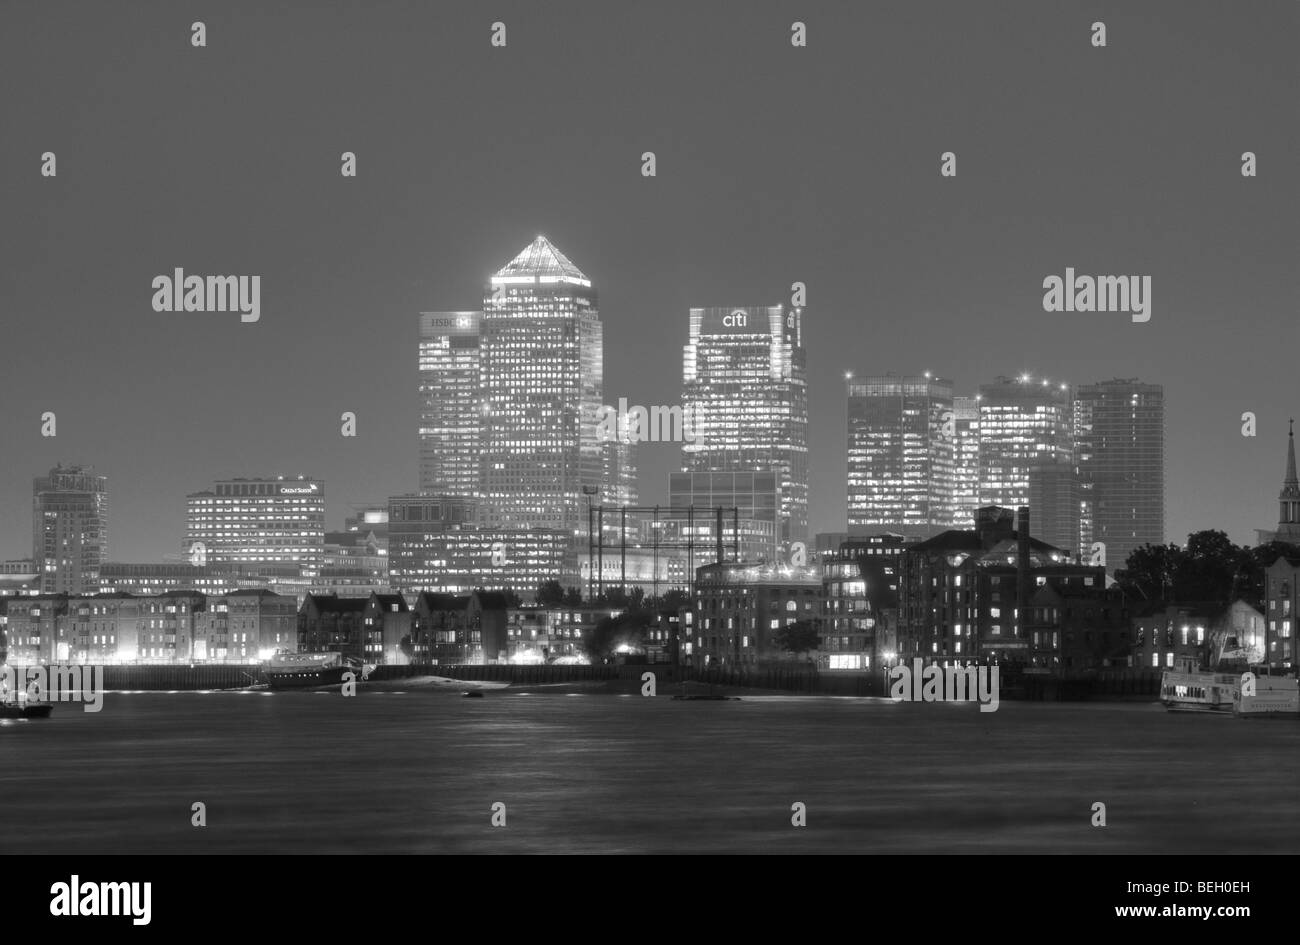 London Docklands from across the Thames at night. - Stock Image